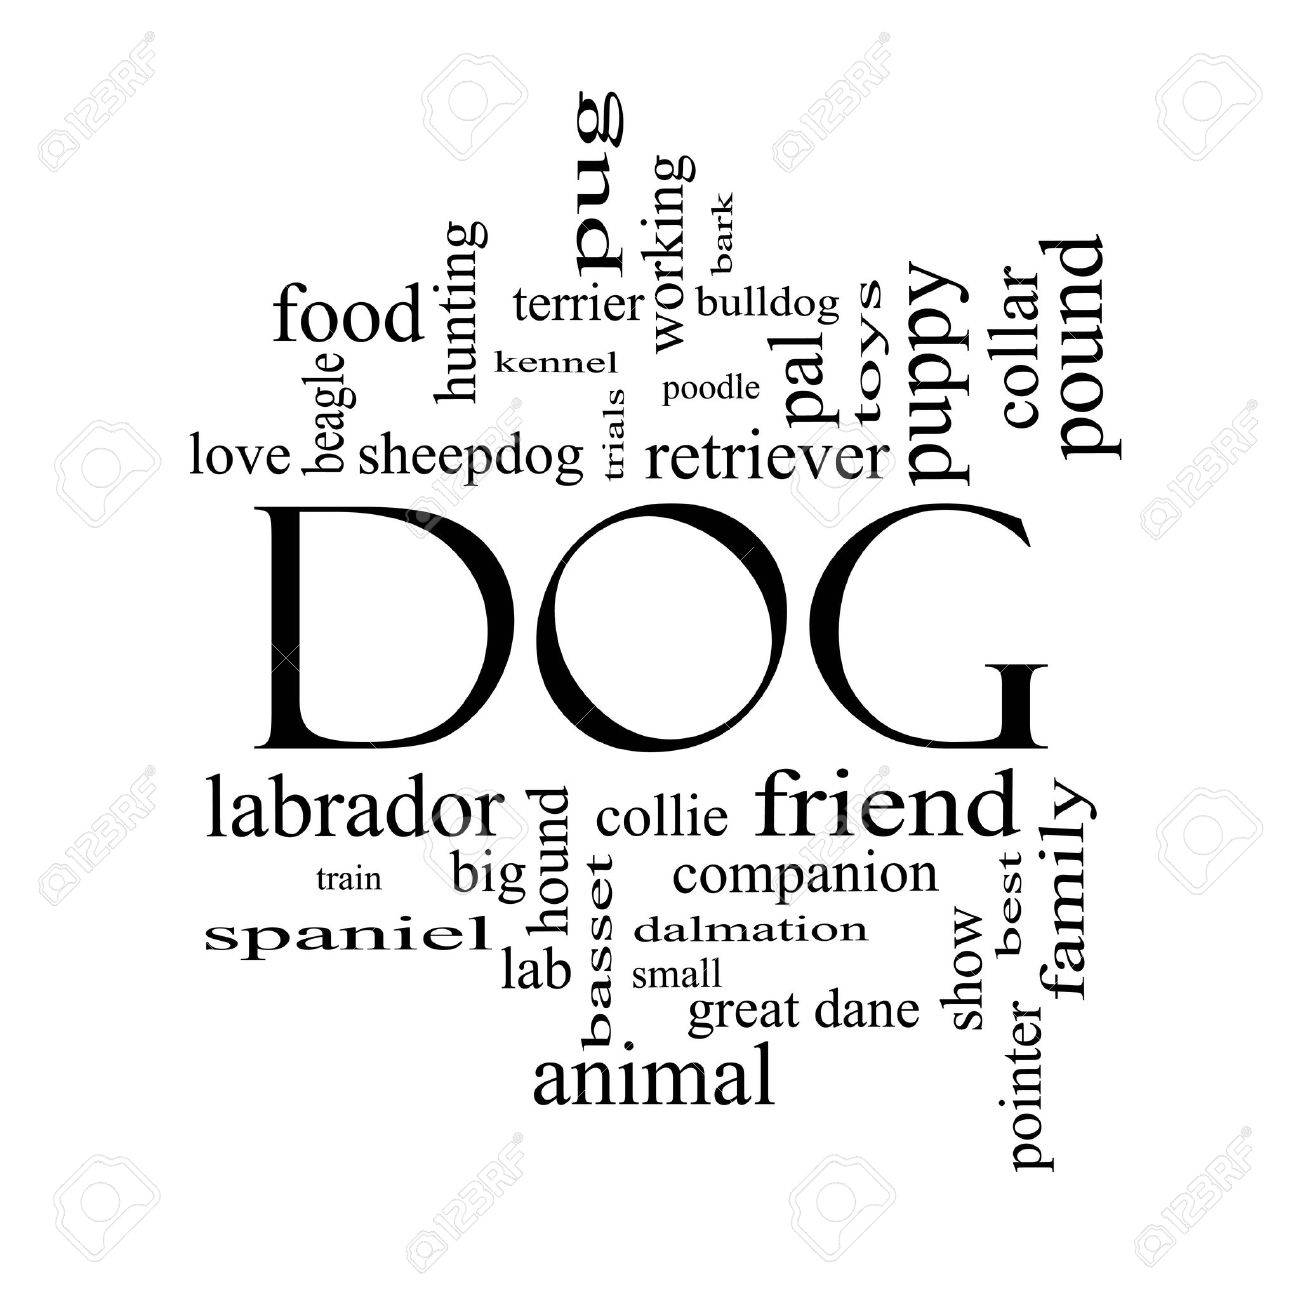 Dog Word Cloud Concept in black and white with great terms such as love, friend, best, hound and more. Stock Photo - 17996190